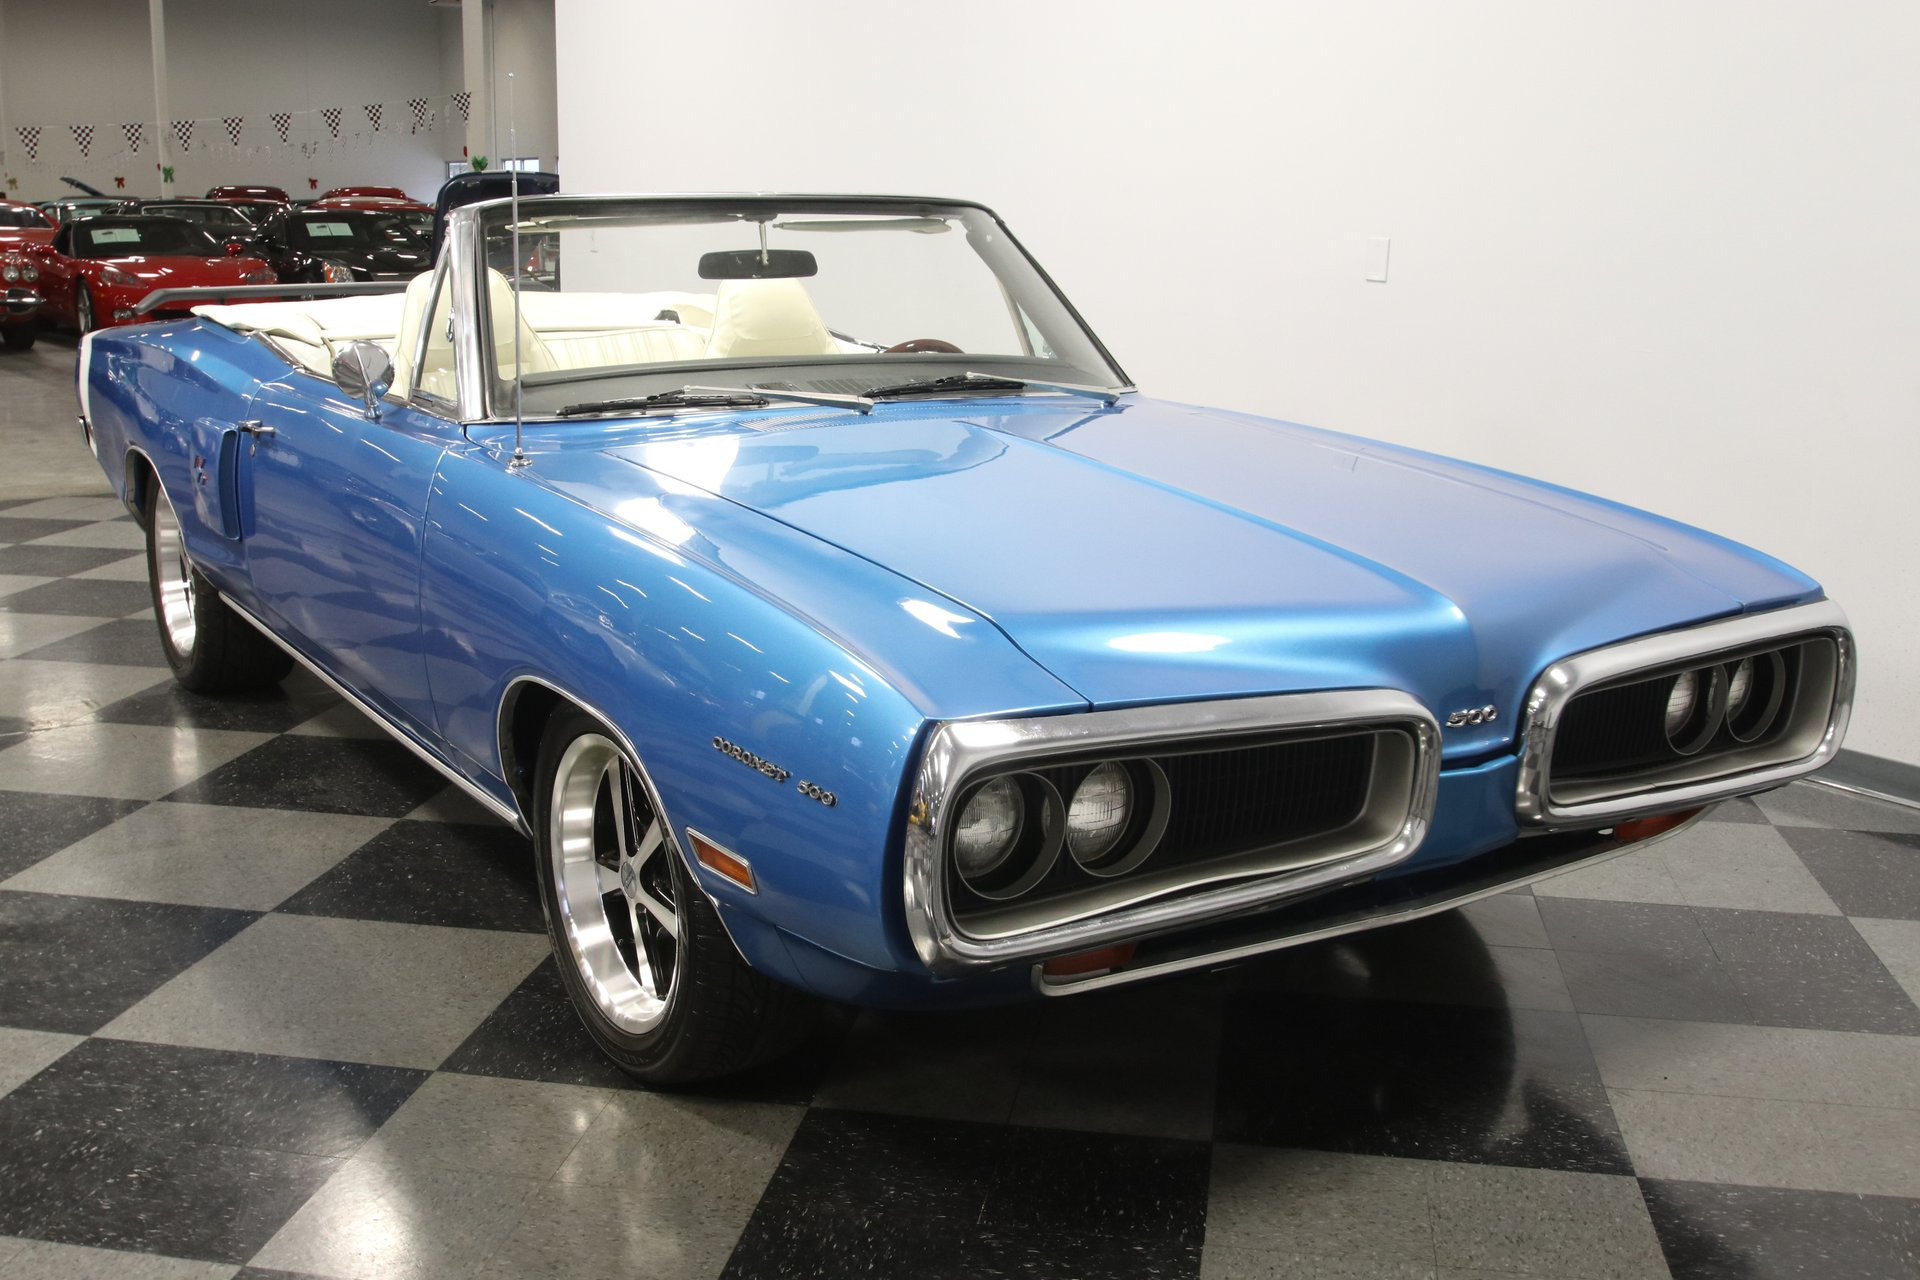 1970 Dodge Coronet Classic Cars For Sale Streetside Classics The Nation S 1 Consignment Dealer